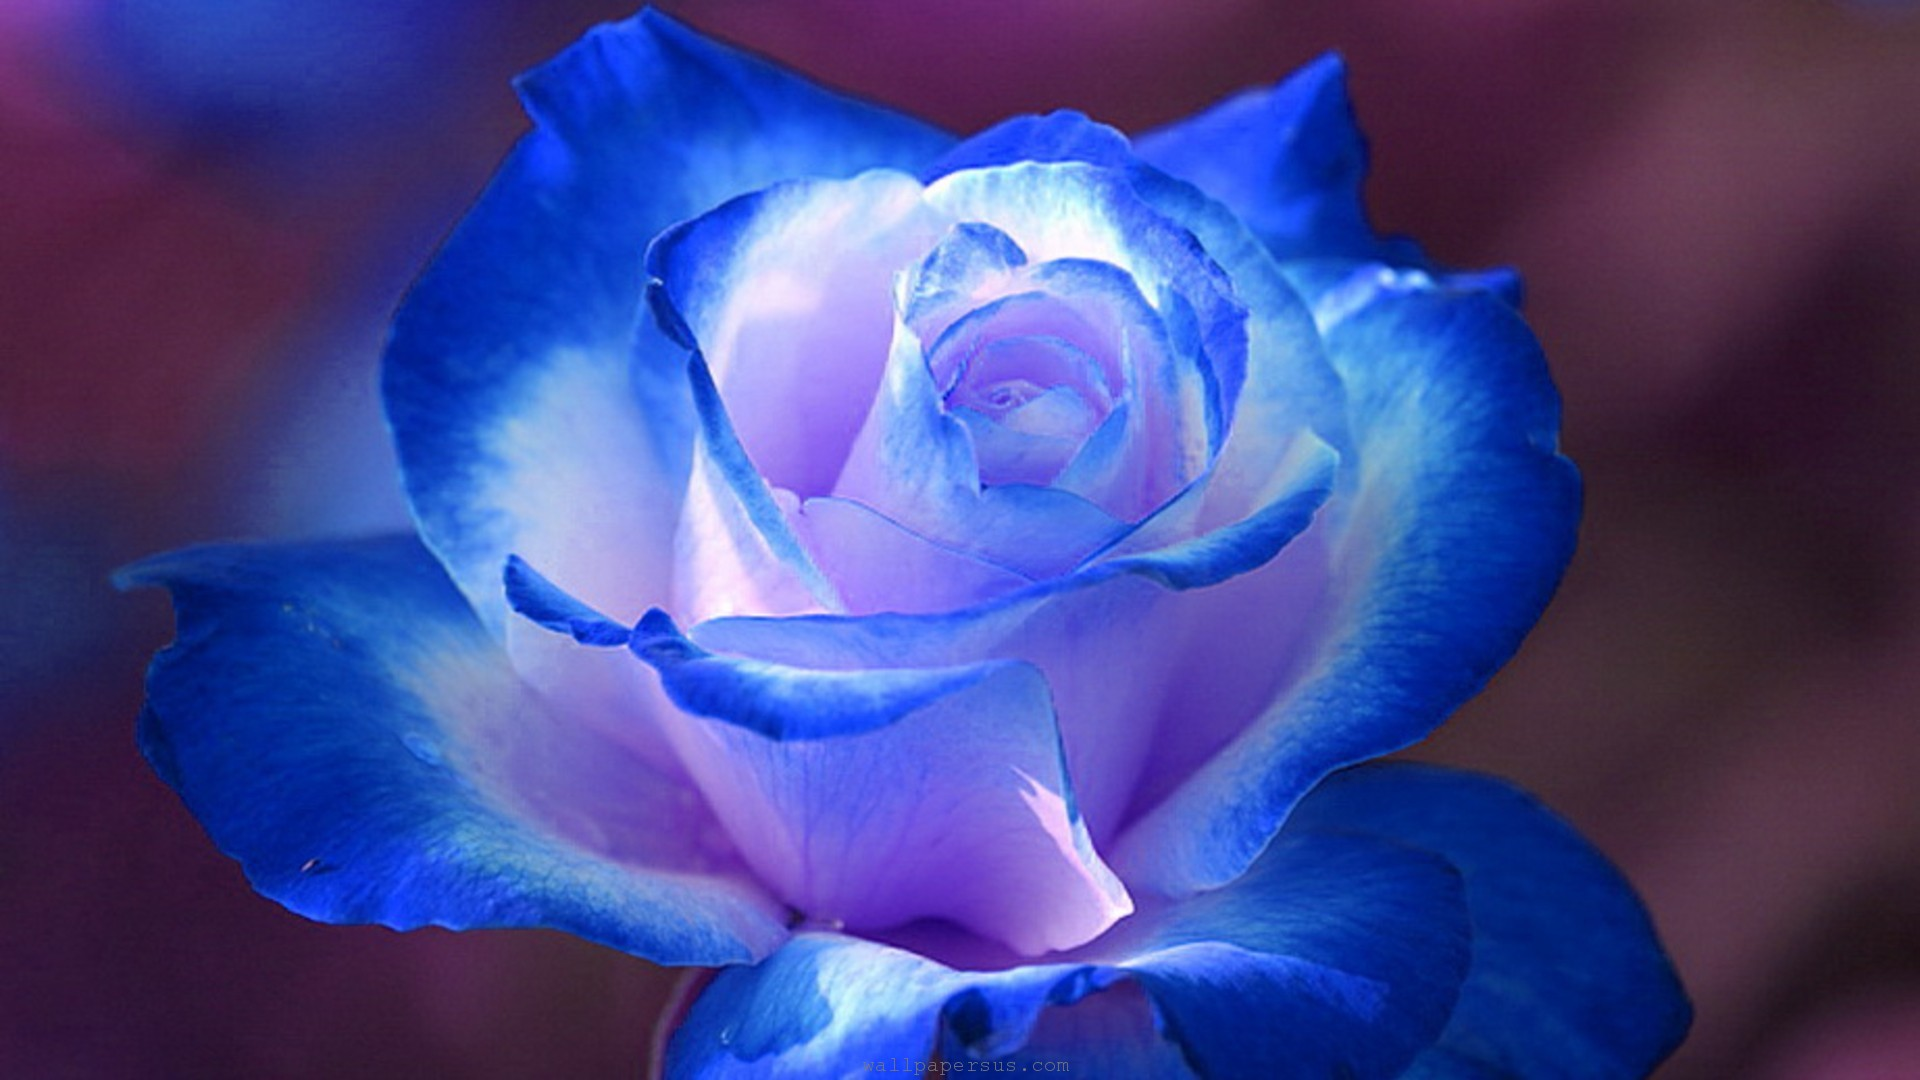 Blue Rose Flower Images Hd Wallpaper   Beautiful Blue And White 1920x1080